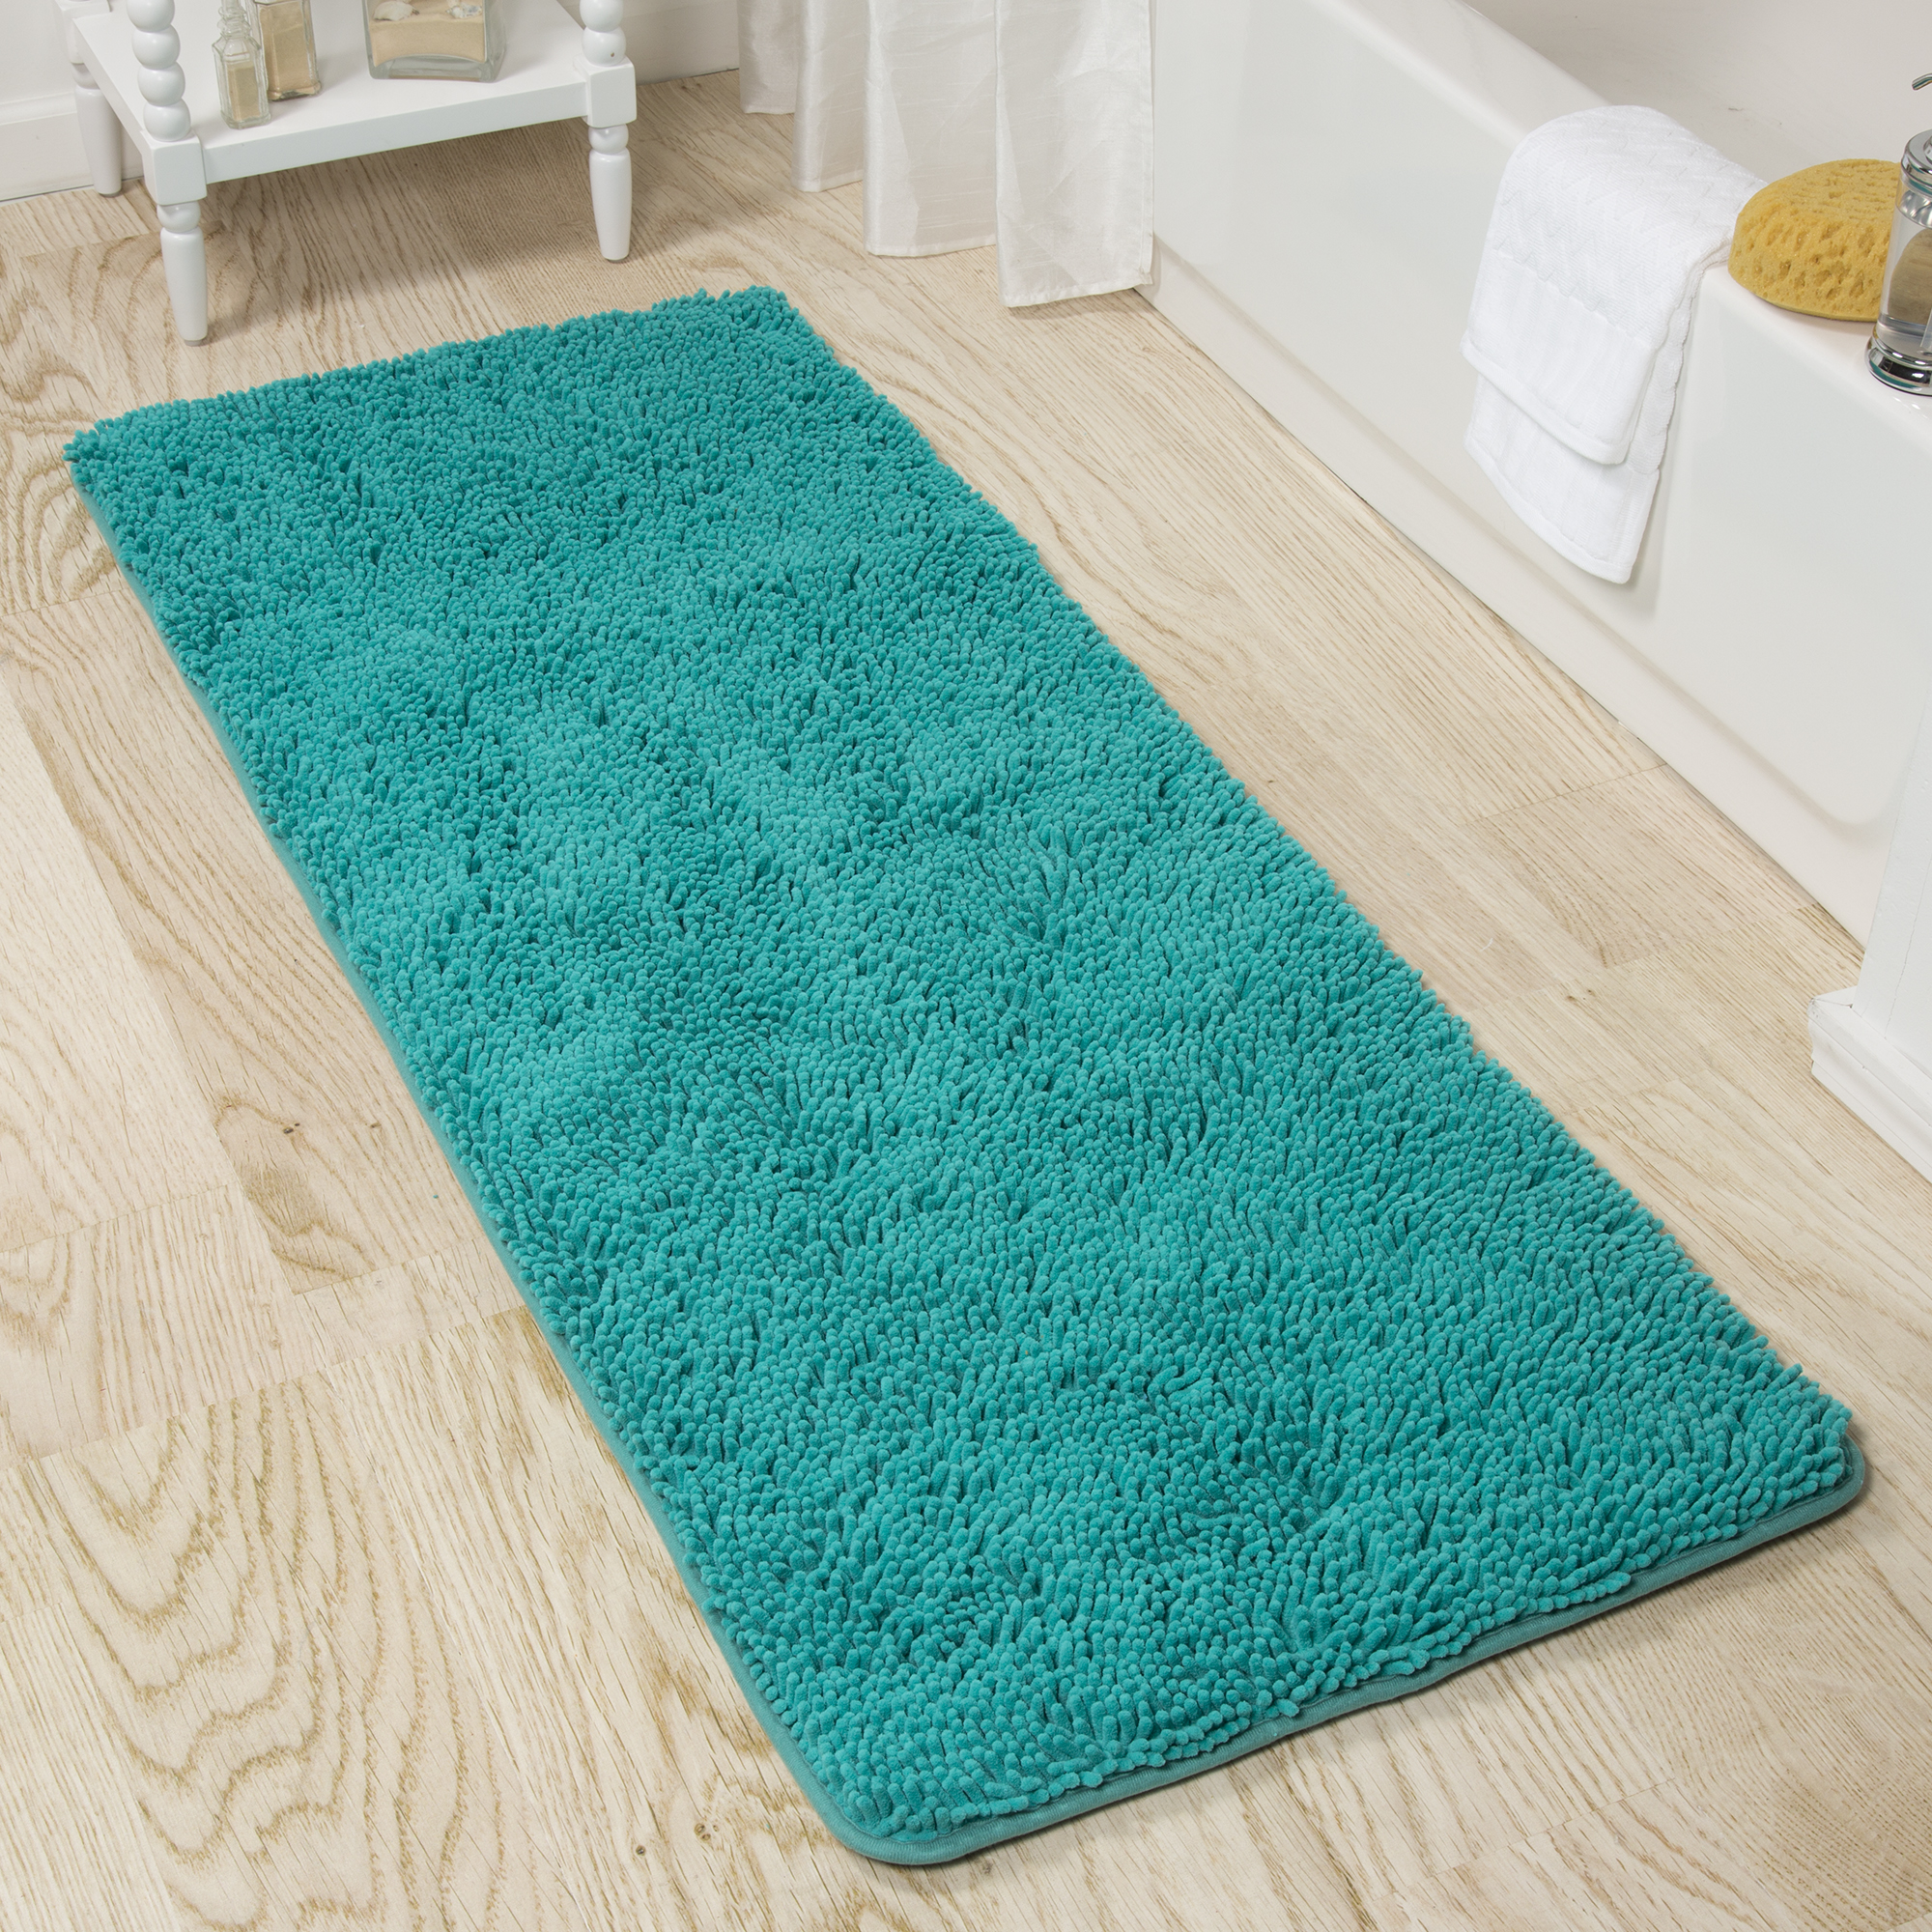 Lavish Extra Long Home Memory Foam Shag Bath Mat 2 X 5